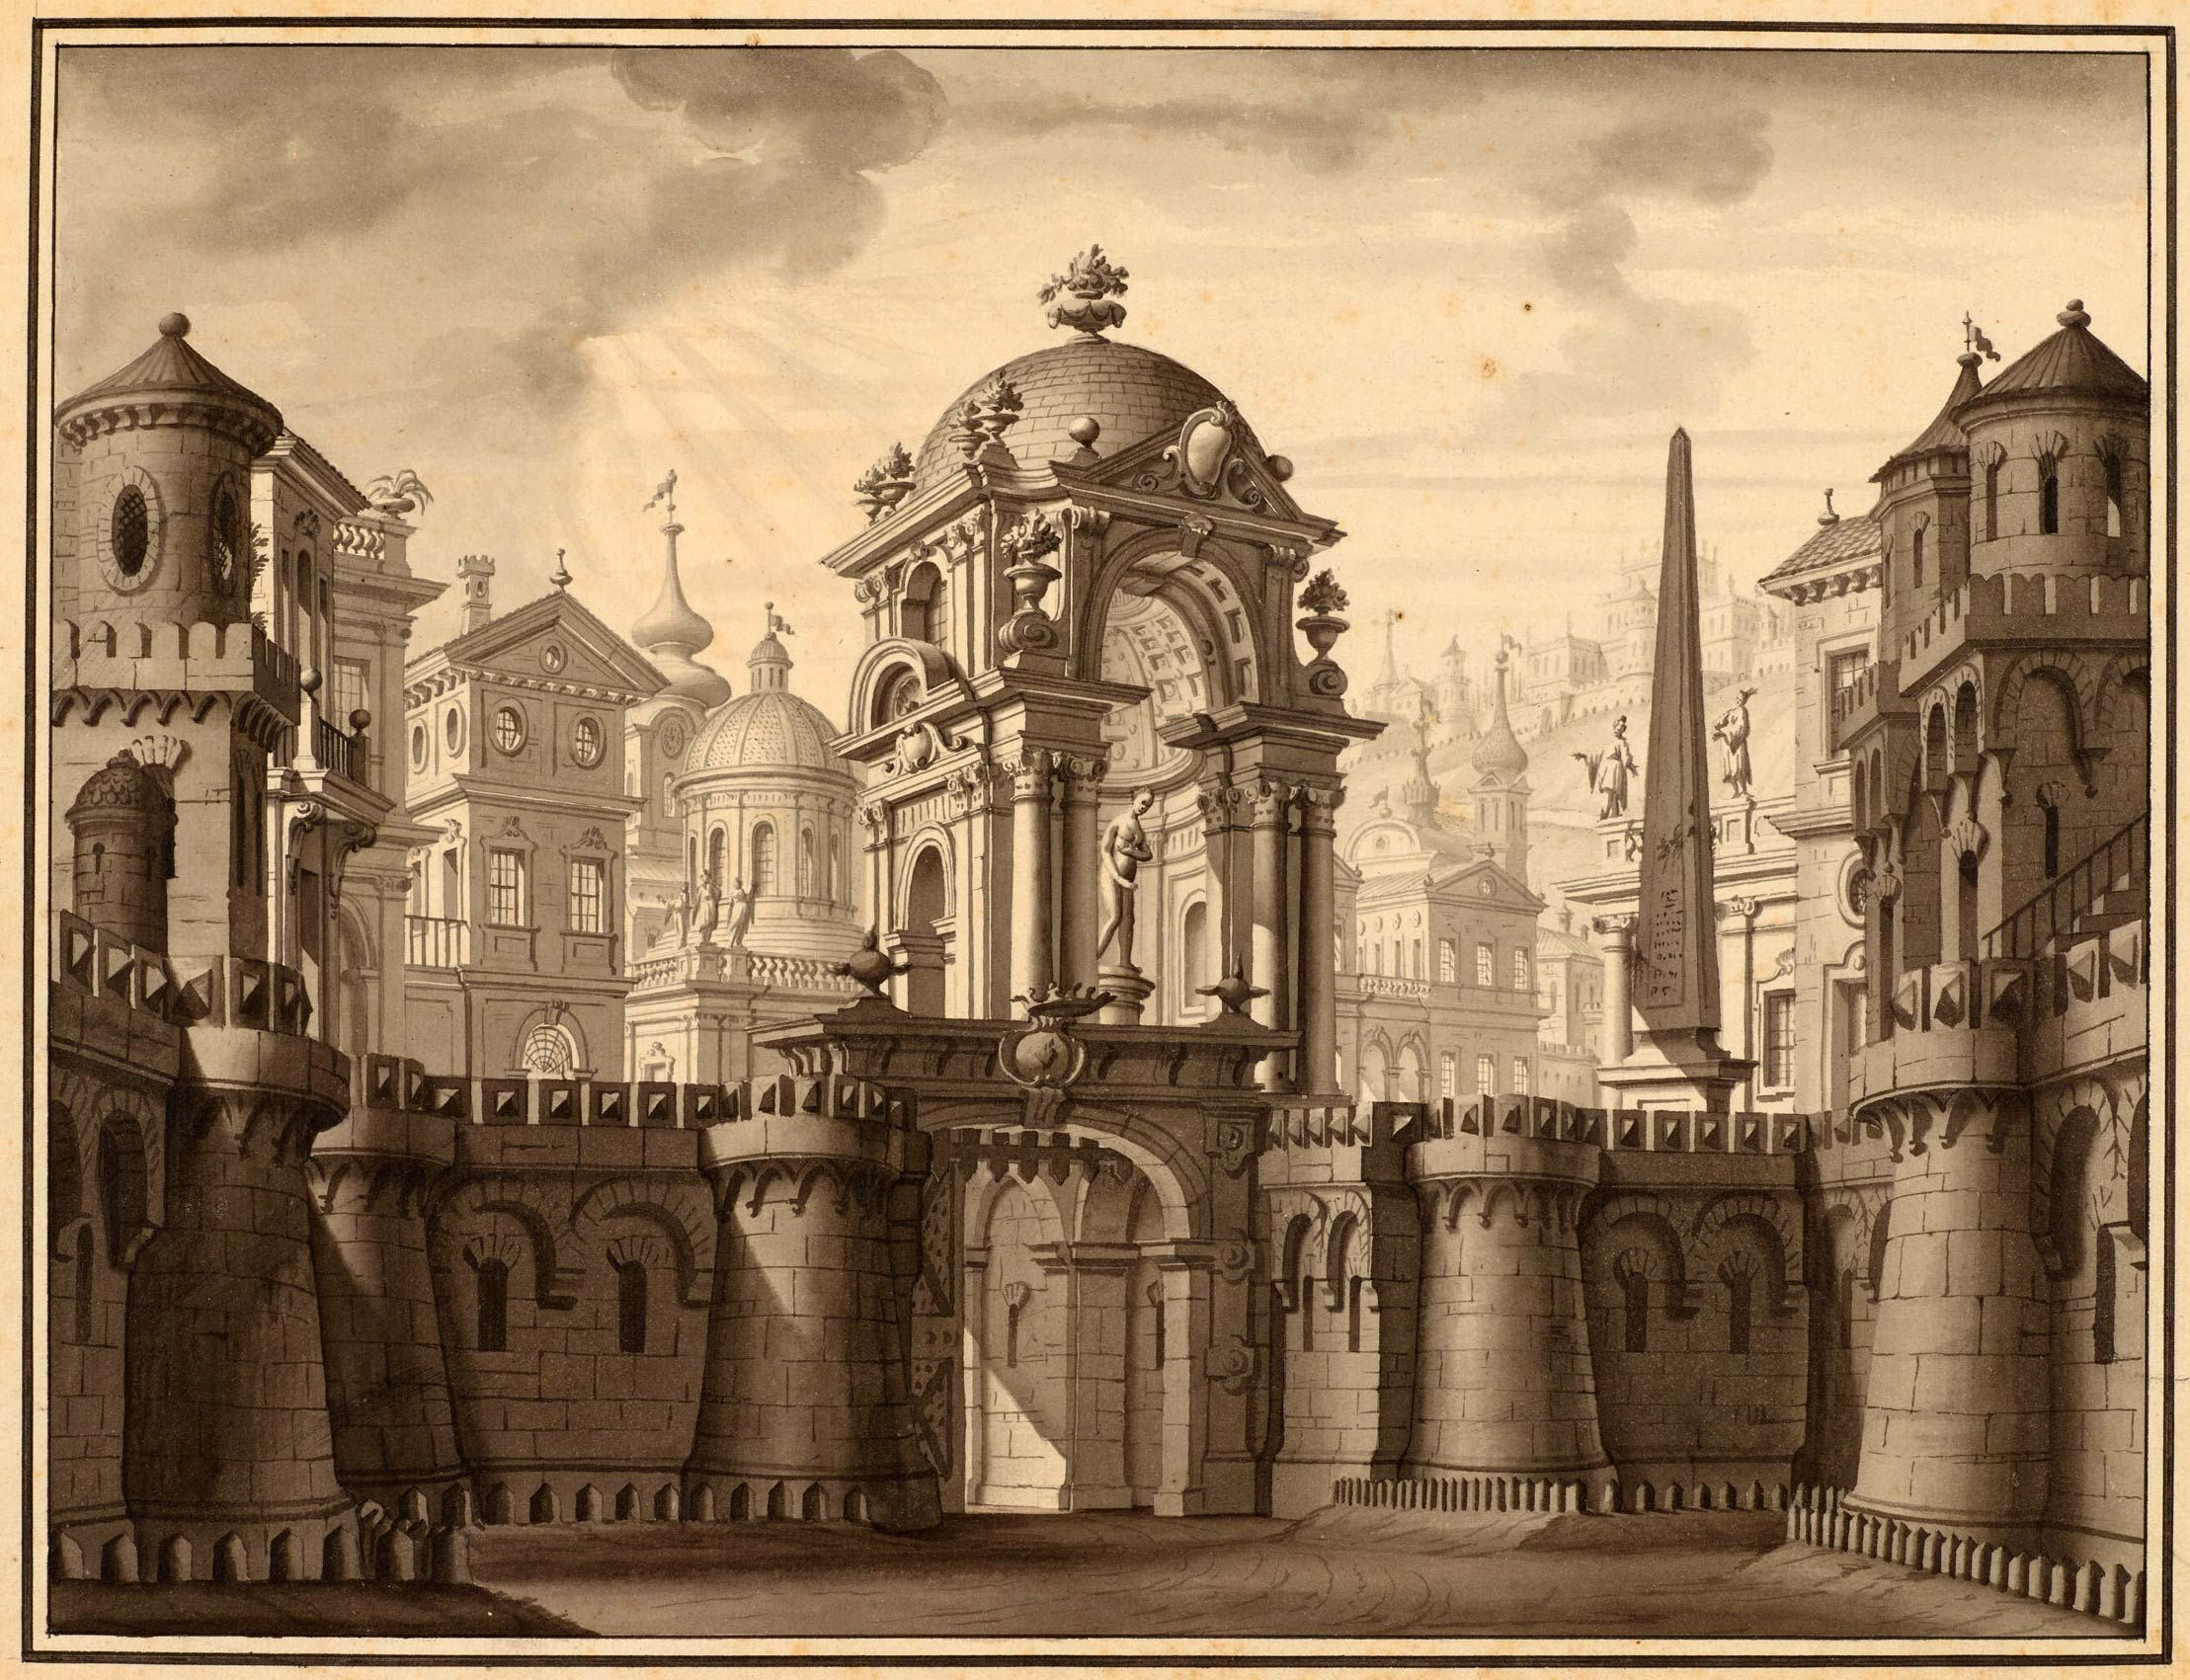 German School   18th century   The Entrance to a Baroque City   The Morgan Library & Museum